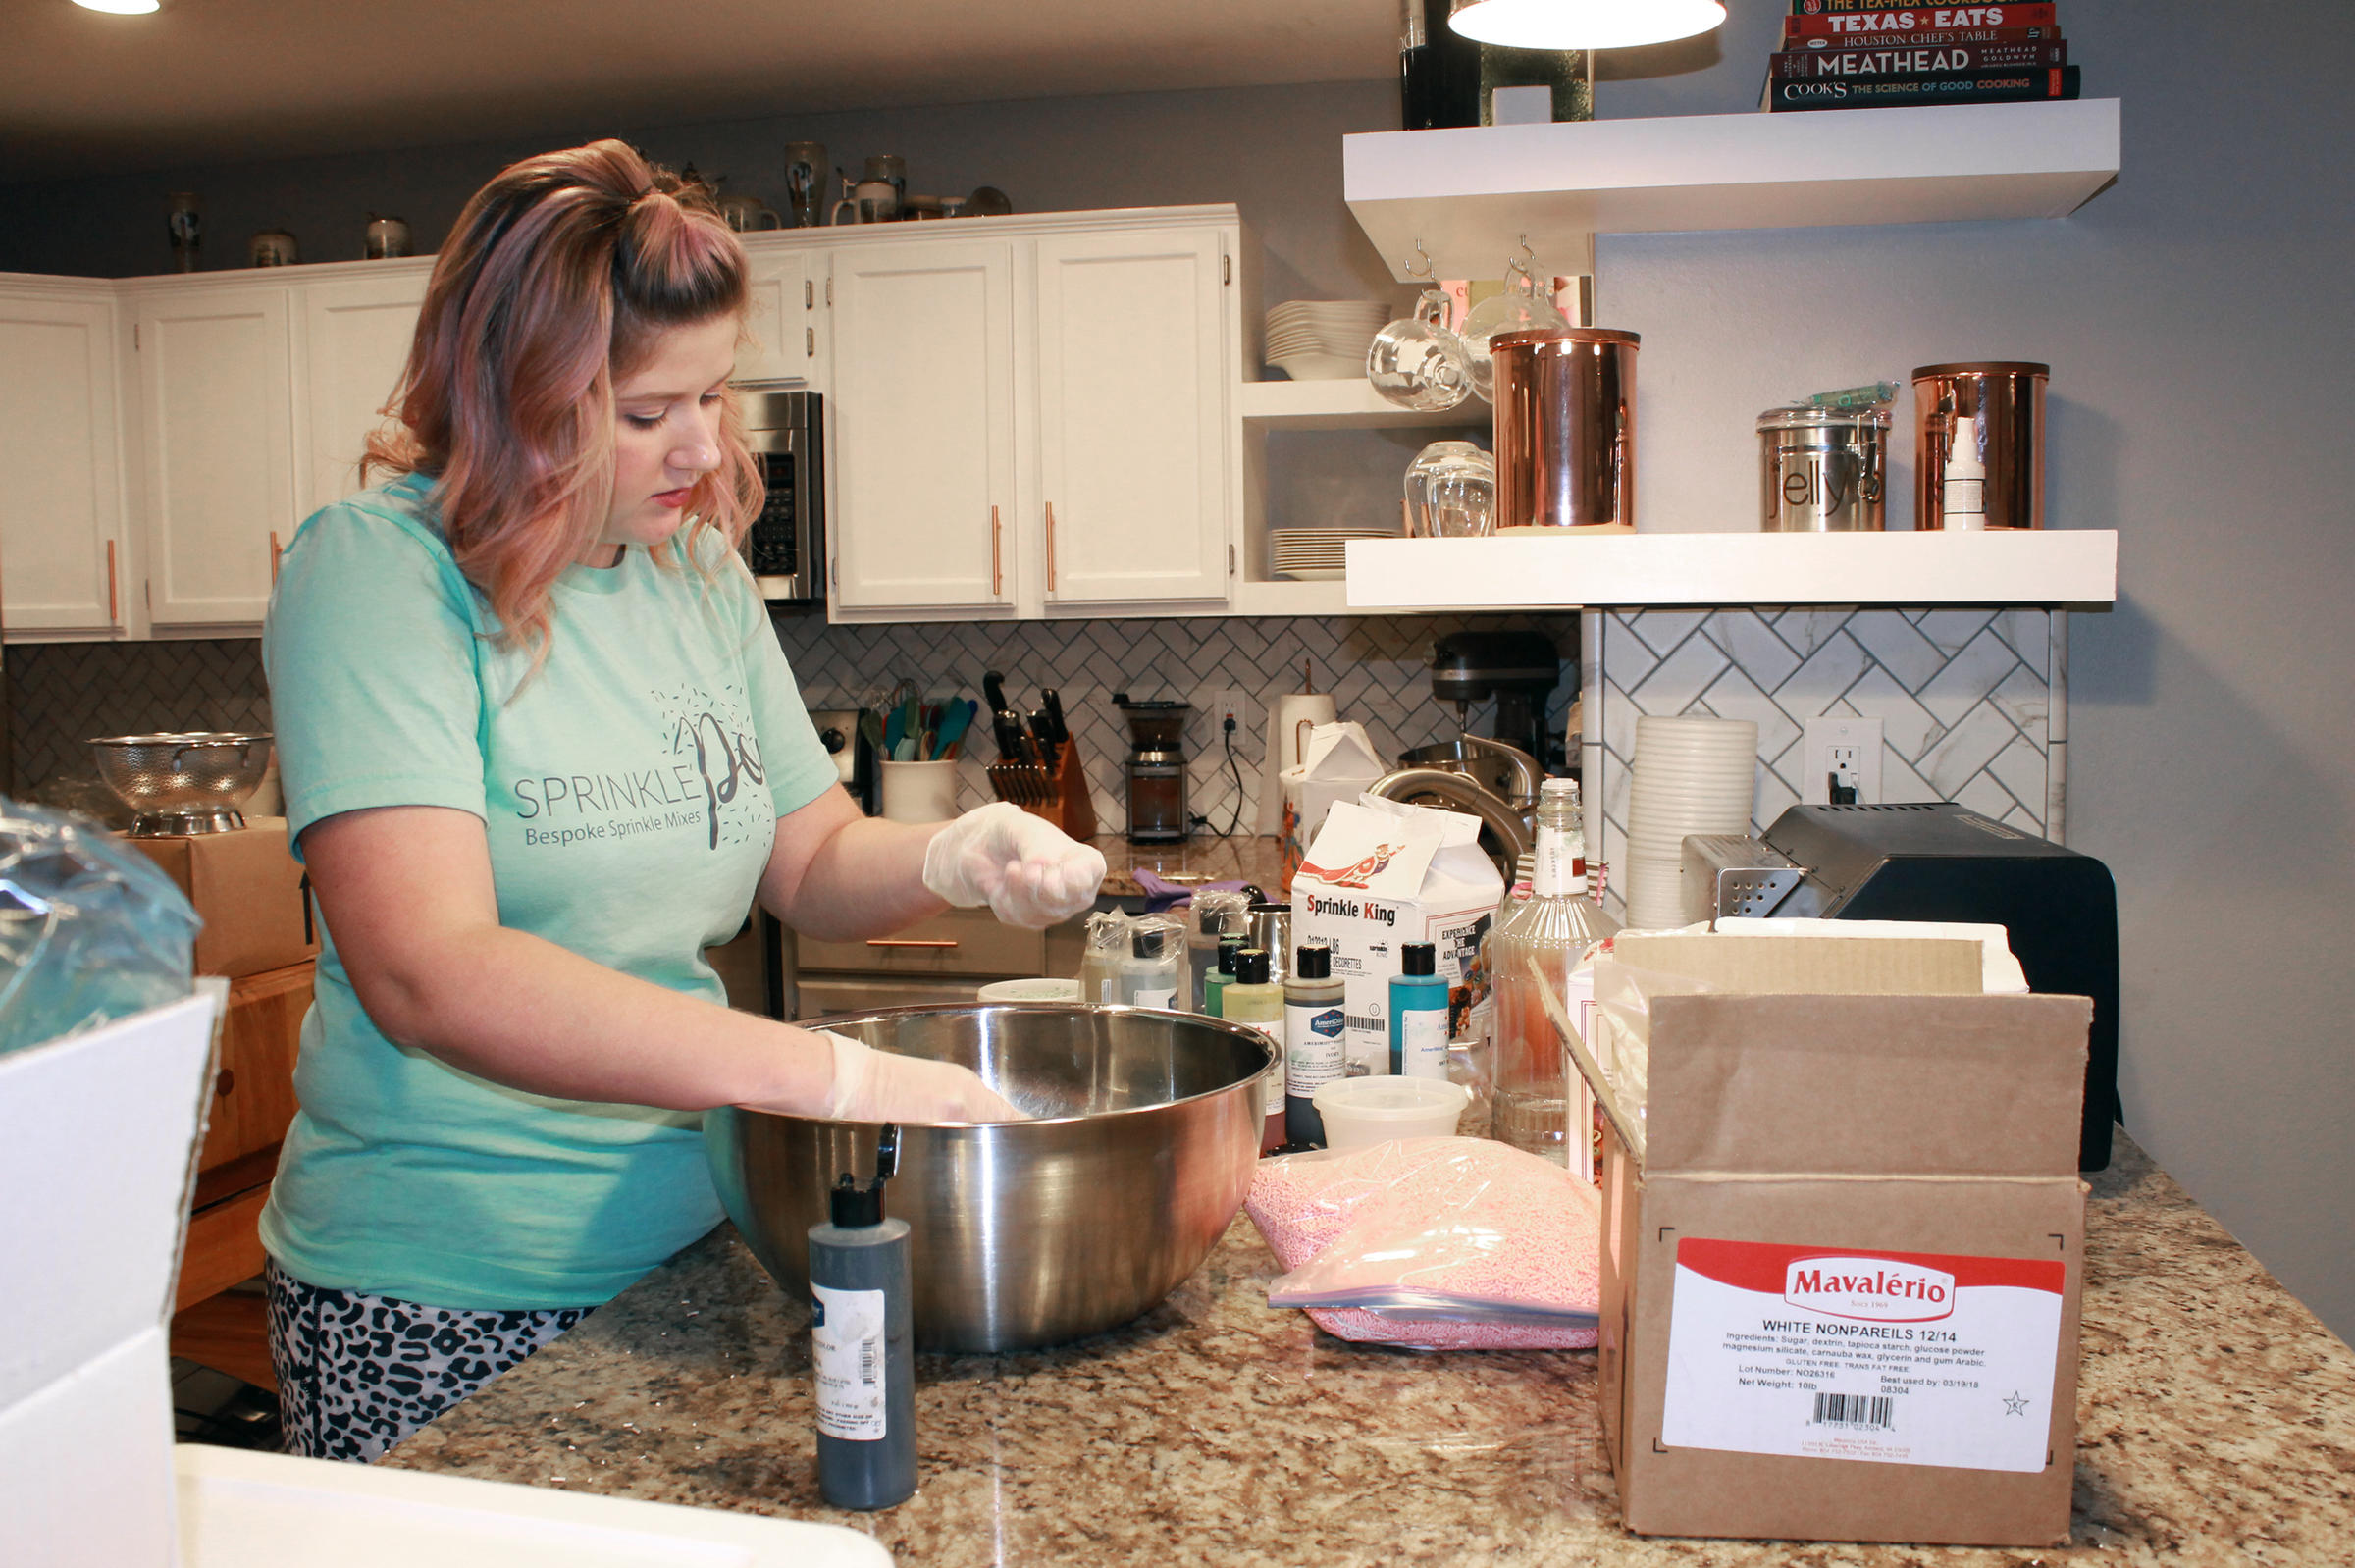 Gourmet Sprinkles Make Sweets And Other Treats Sparkle | WPSU